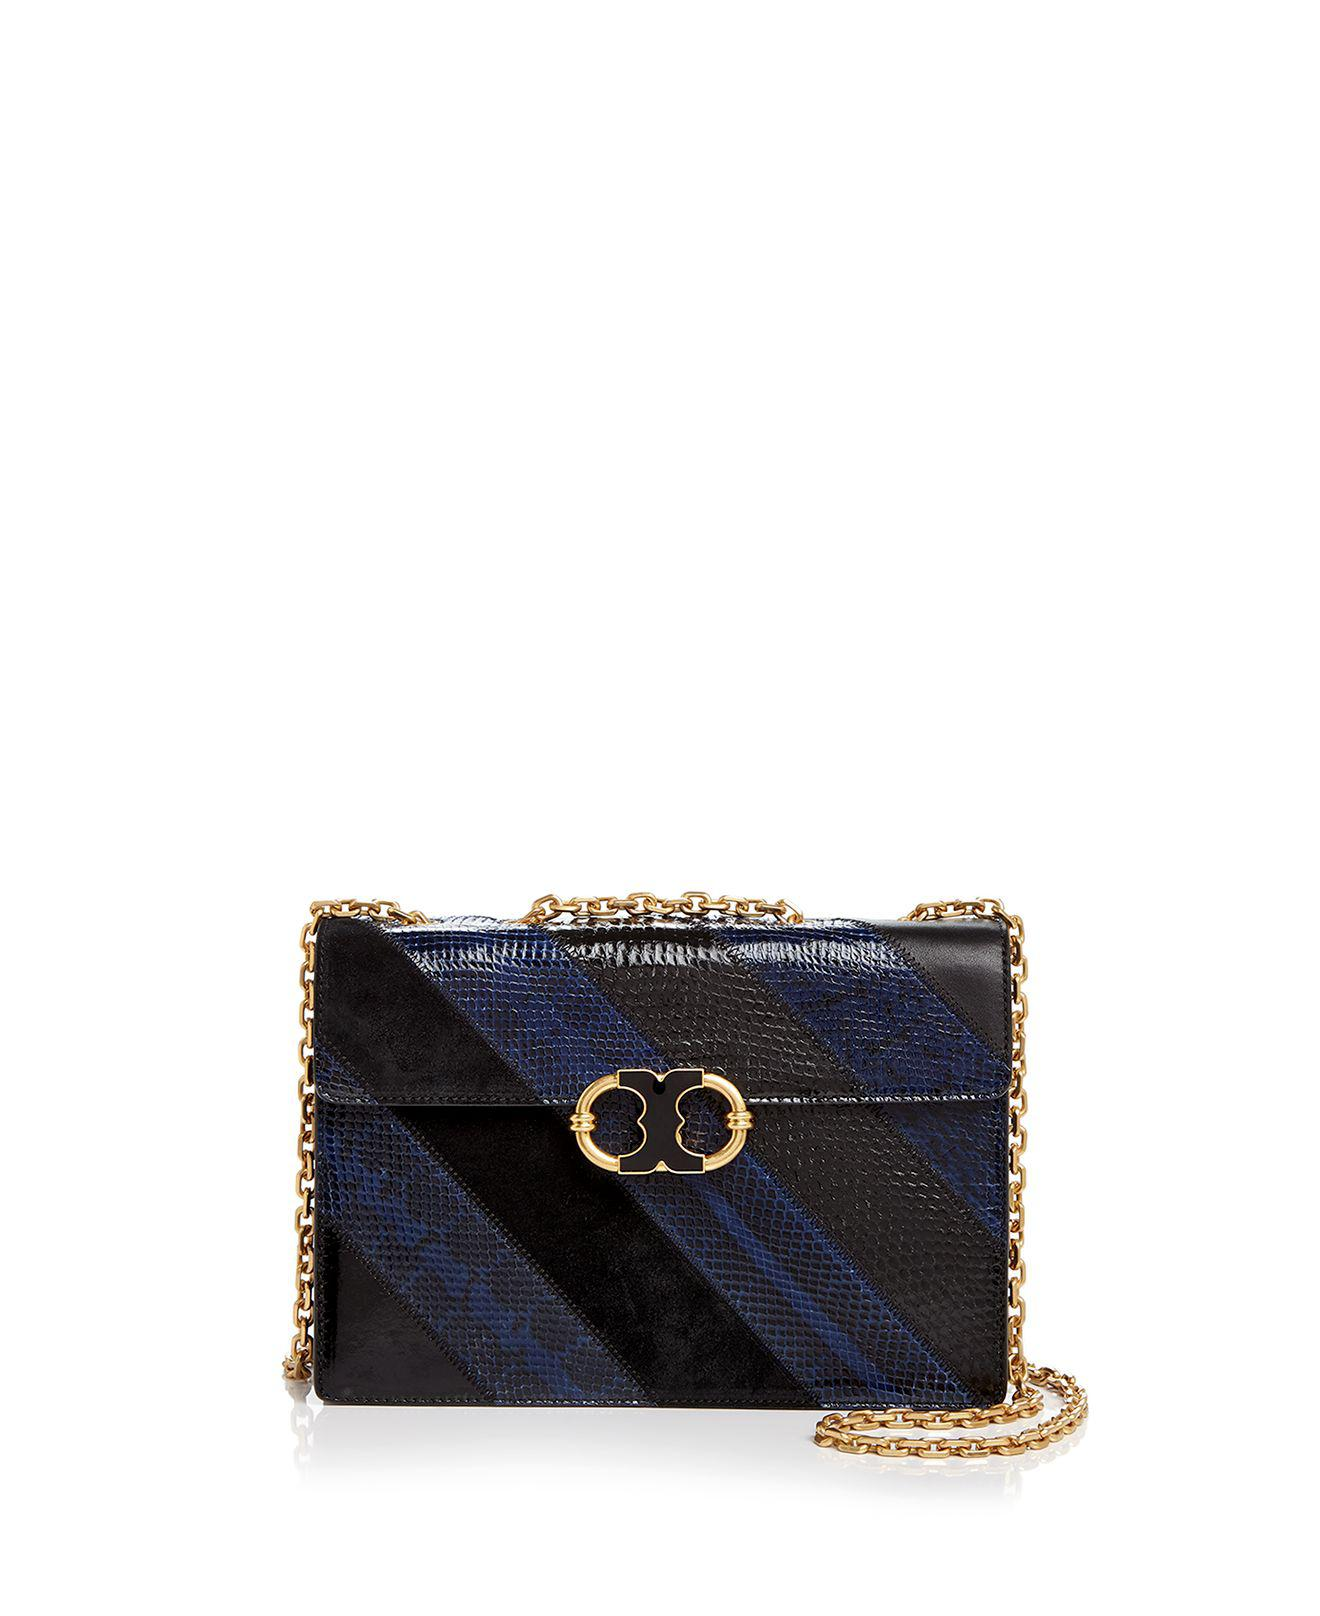 7d62619908f3 Lyst - Tory Burch Gemini Link Chain Snake-embossed Leather Shoulder ...